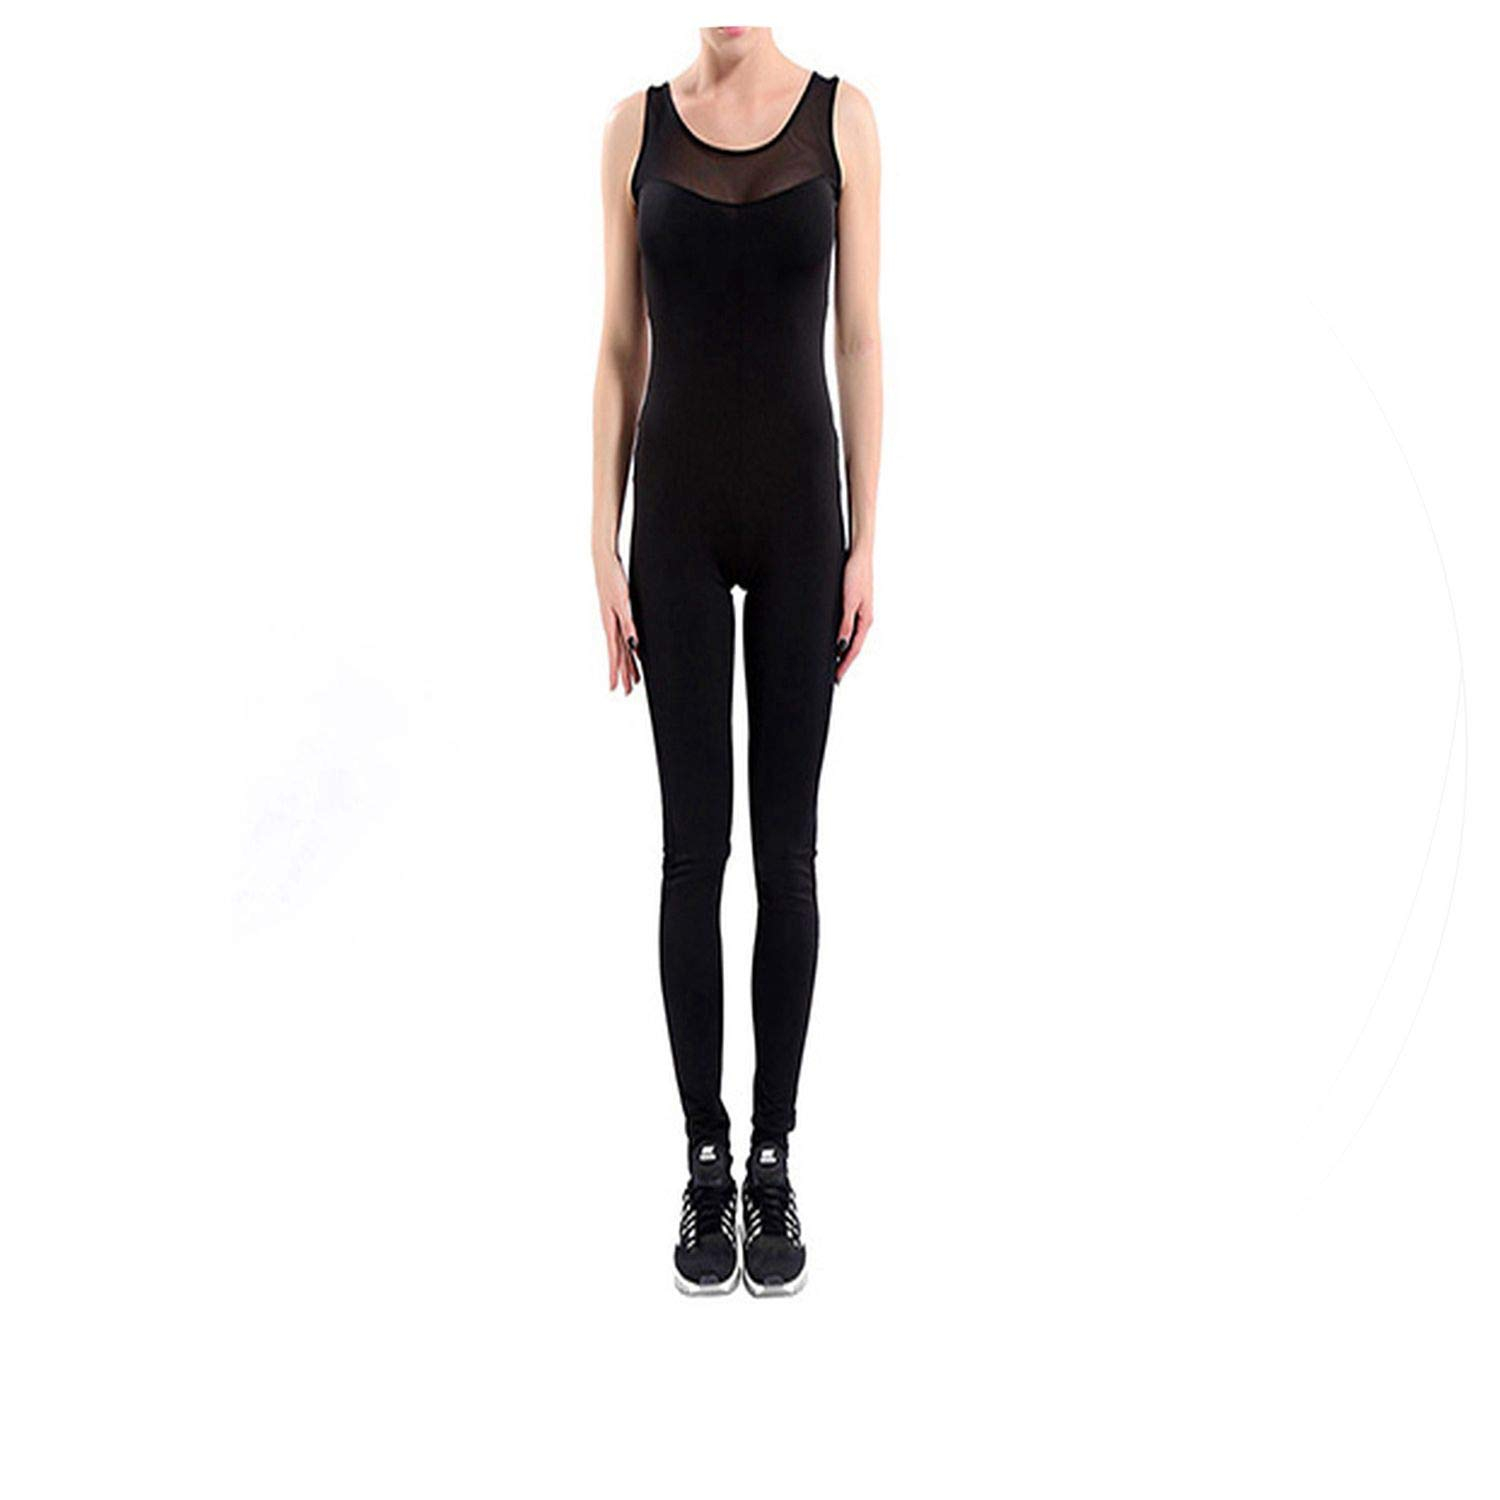 Amazon.com: Black Womens Yoga Jumpsuit Fitness Tight ...